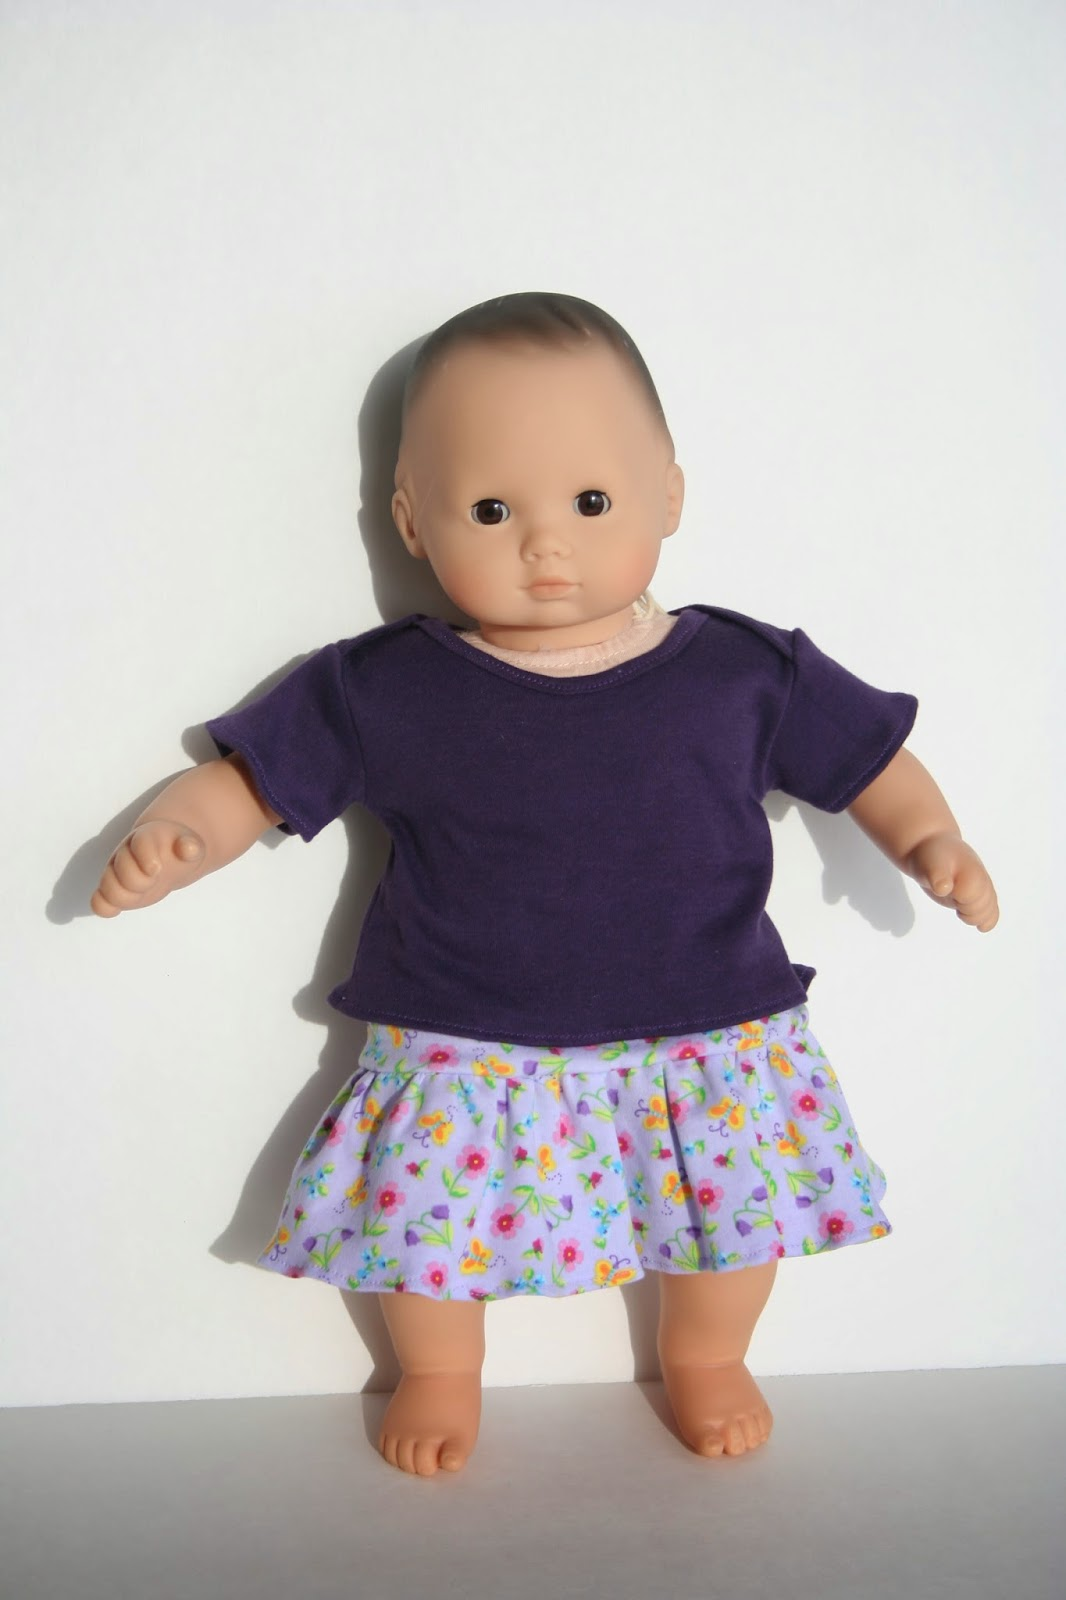 Arts and crafts for your bitty baby doll skirt for bitty for 5 inch baby dolls for crafts